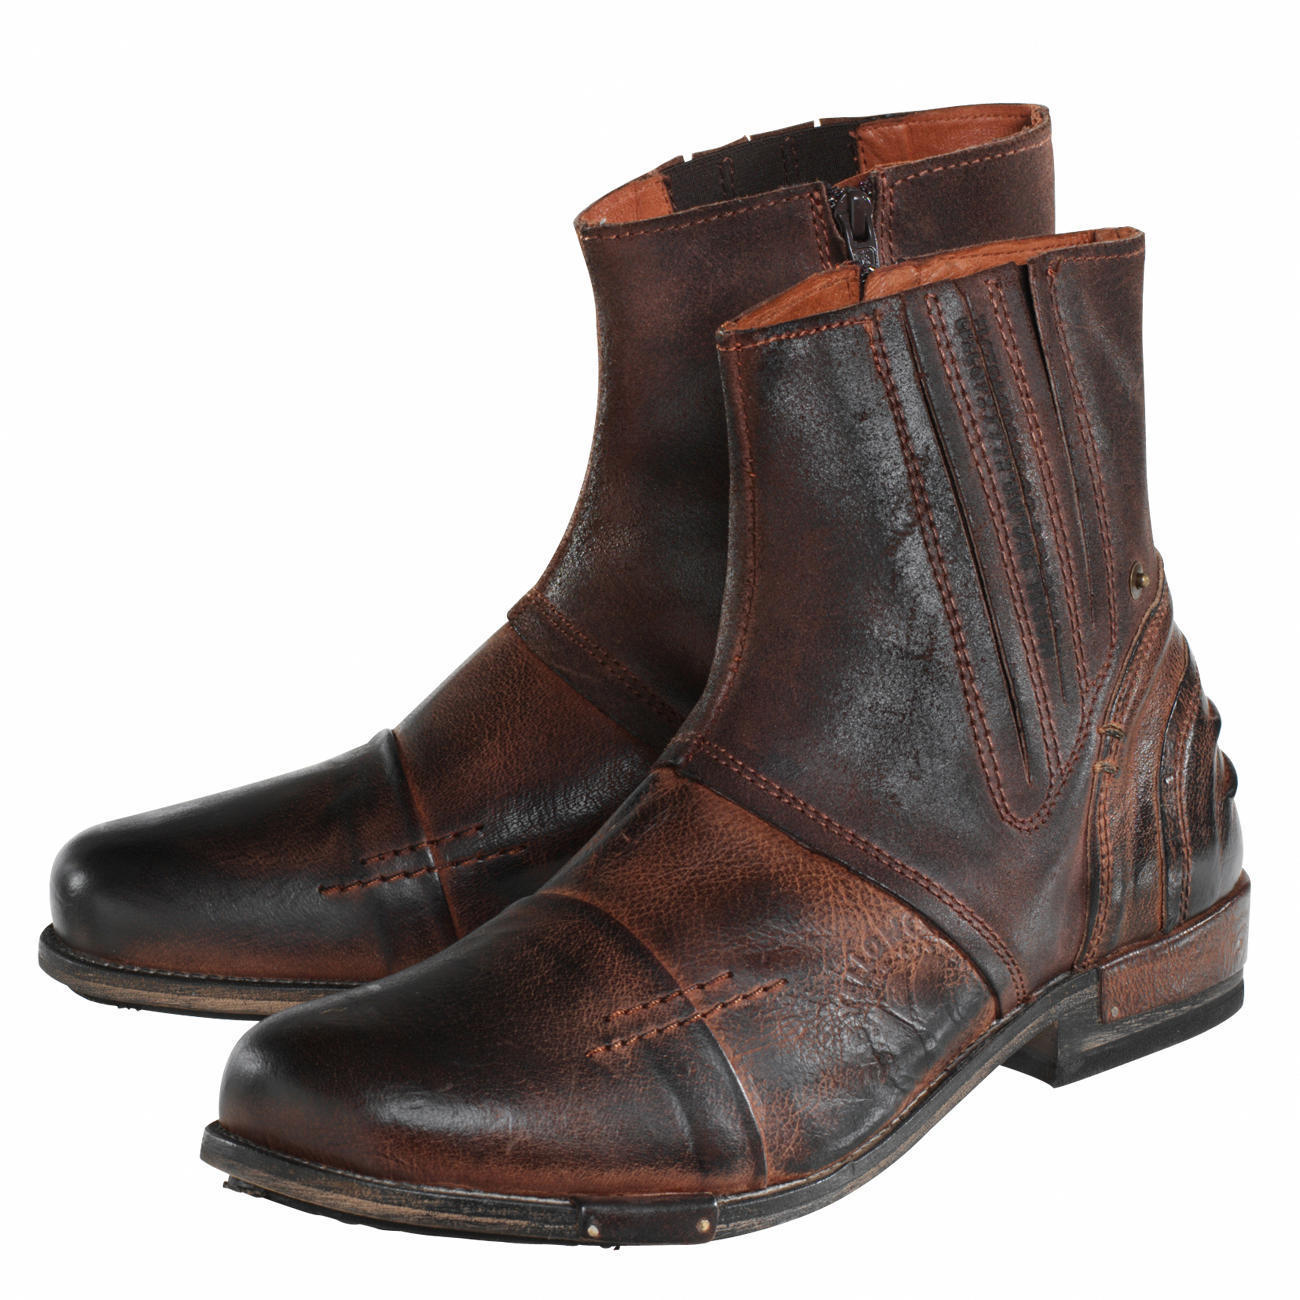 competitive price d2325 72433 Yellow Cab Buffalo Leather Boots | Discover classics